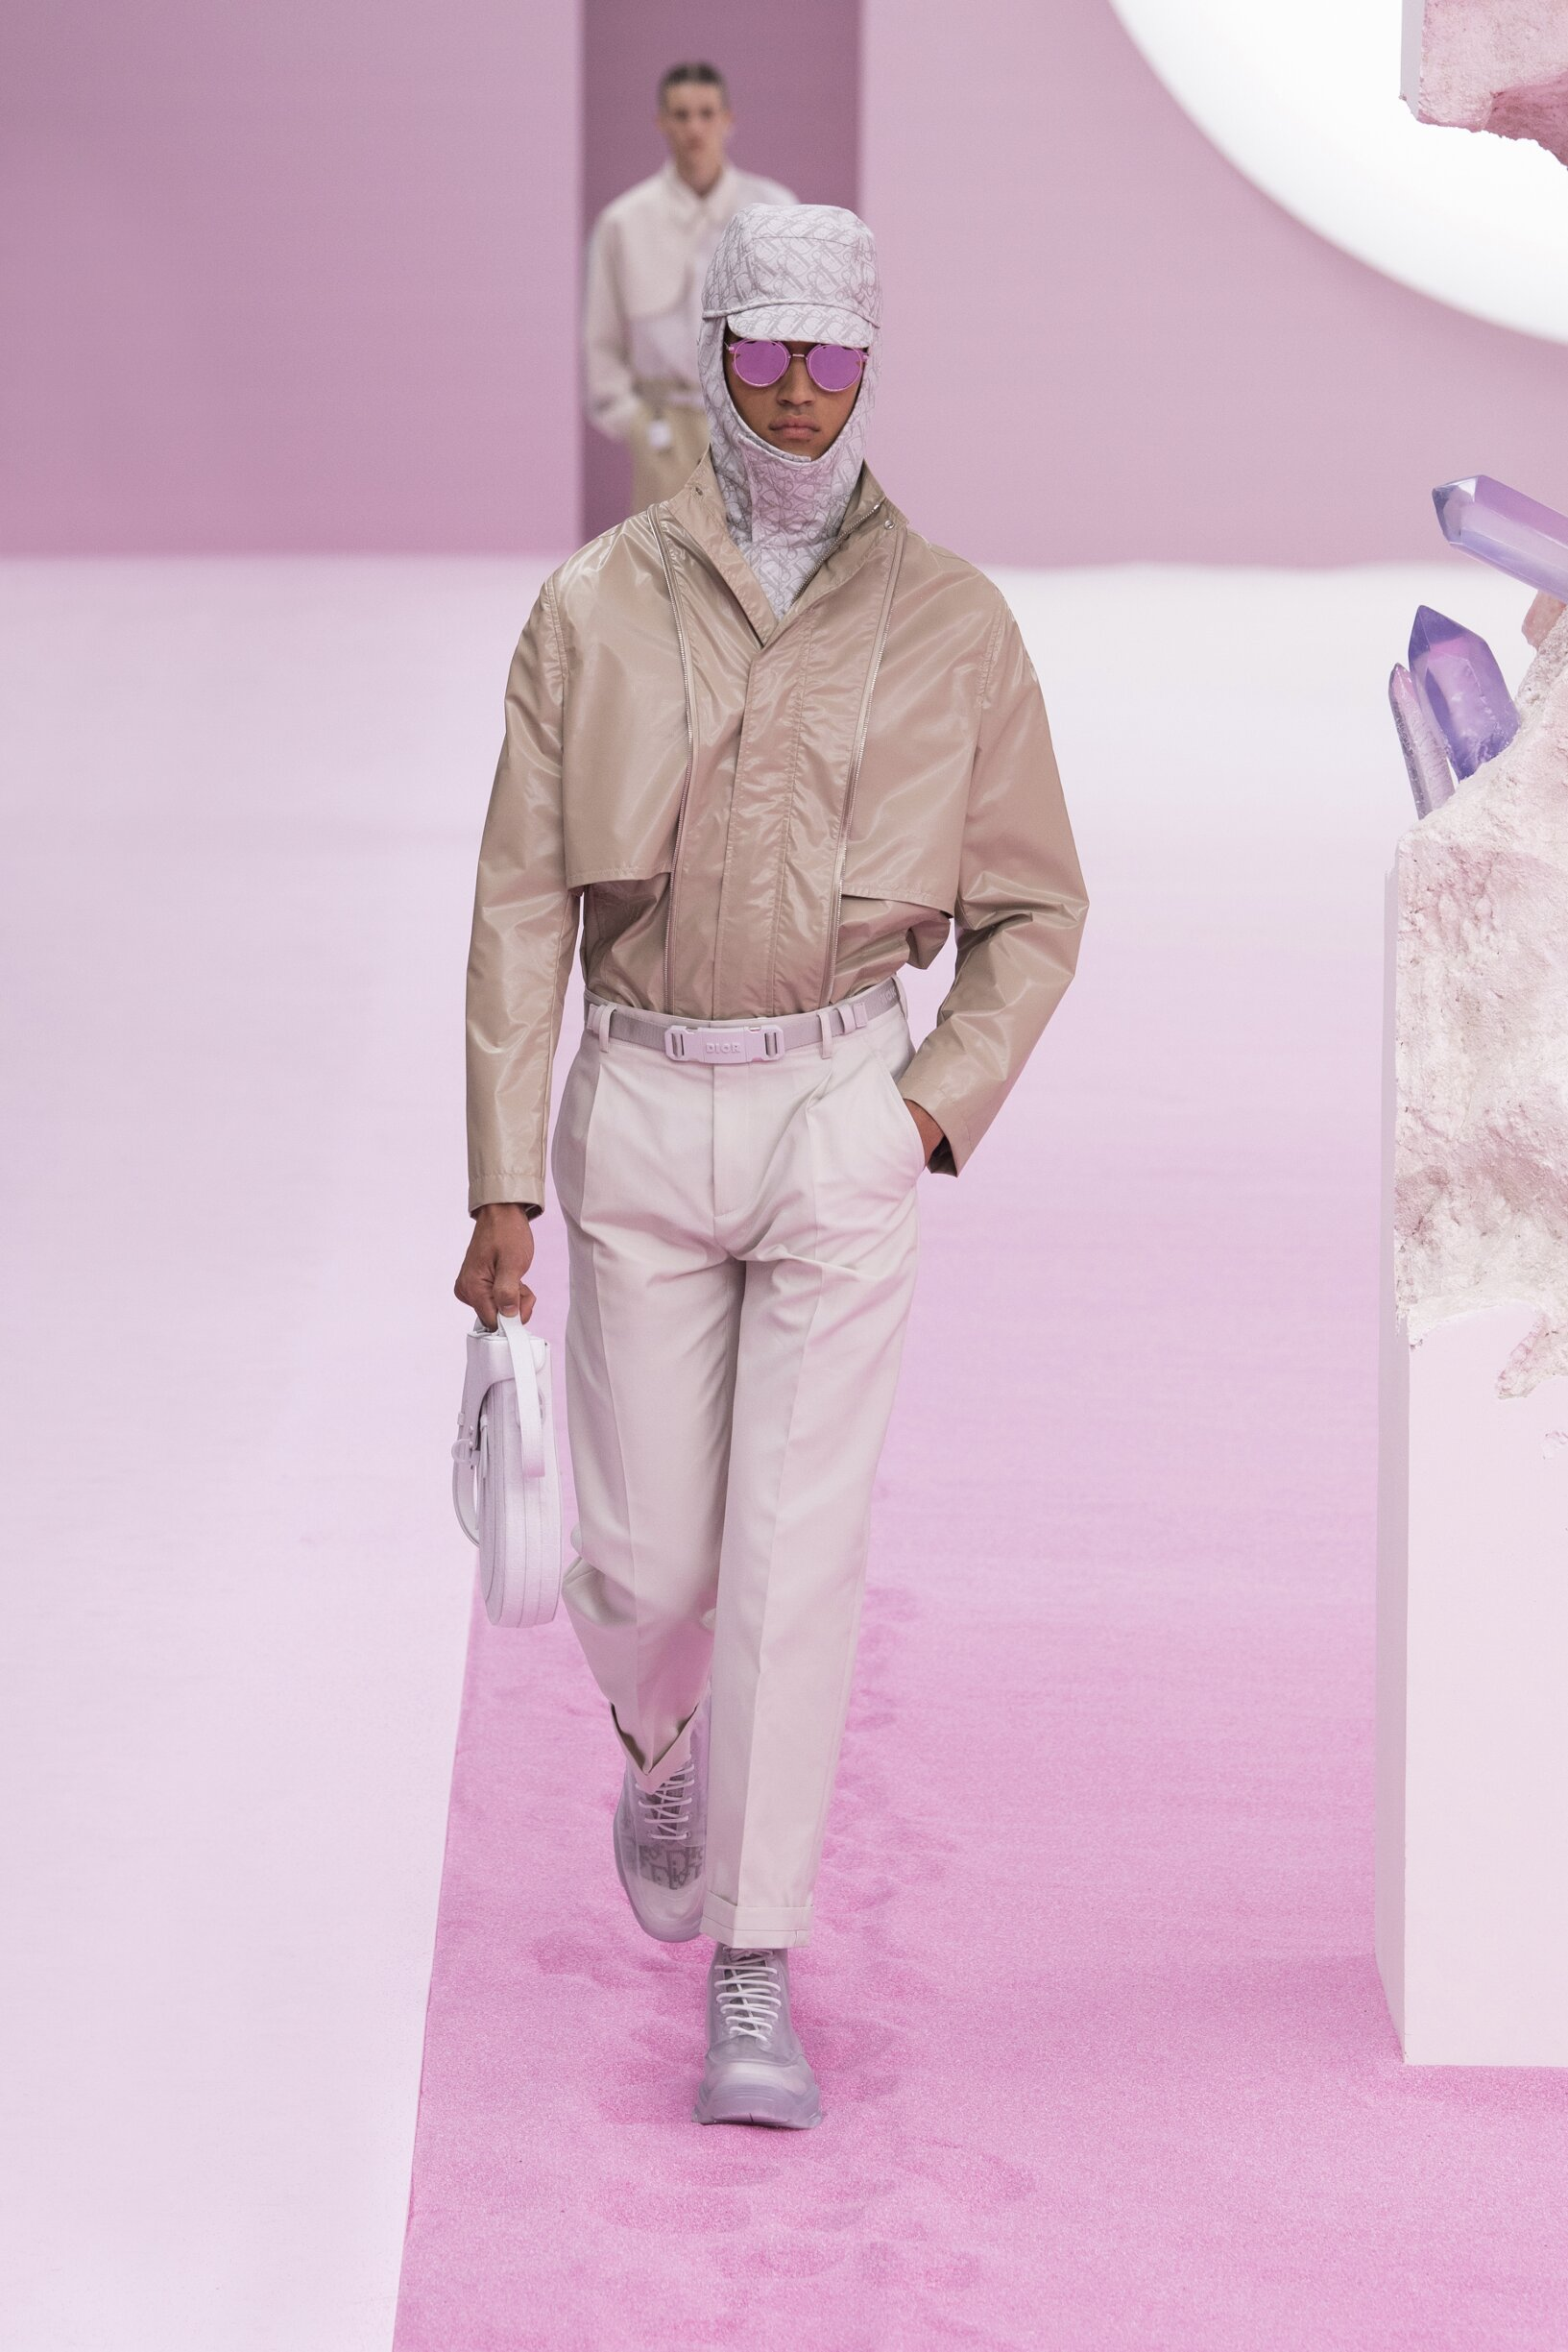 Catwalk Dior Man Fashion Show Summer 2020